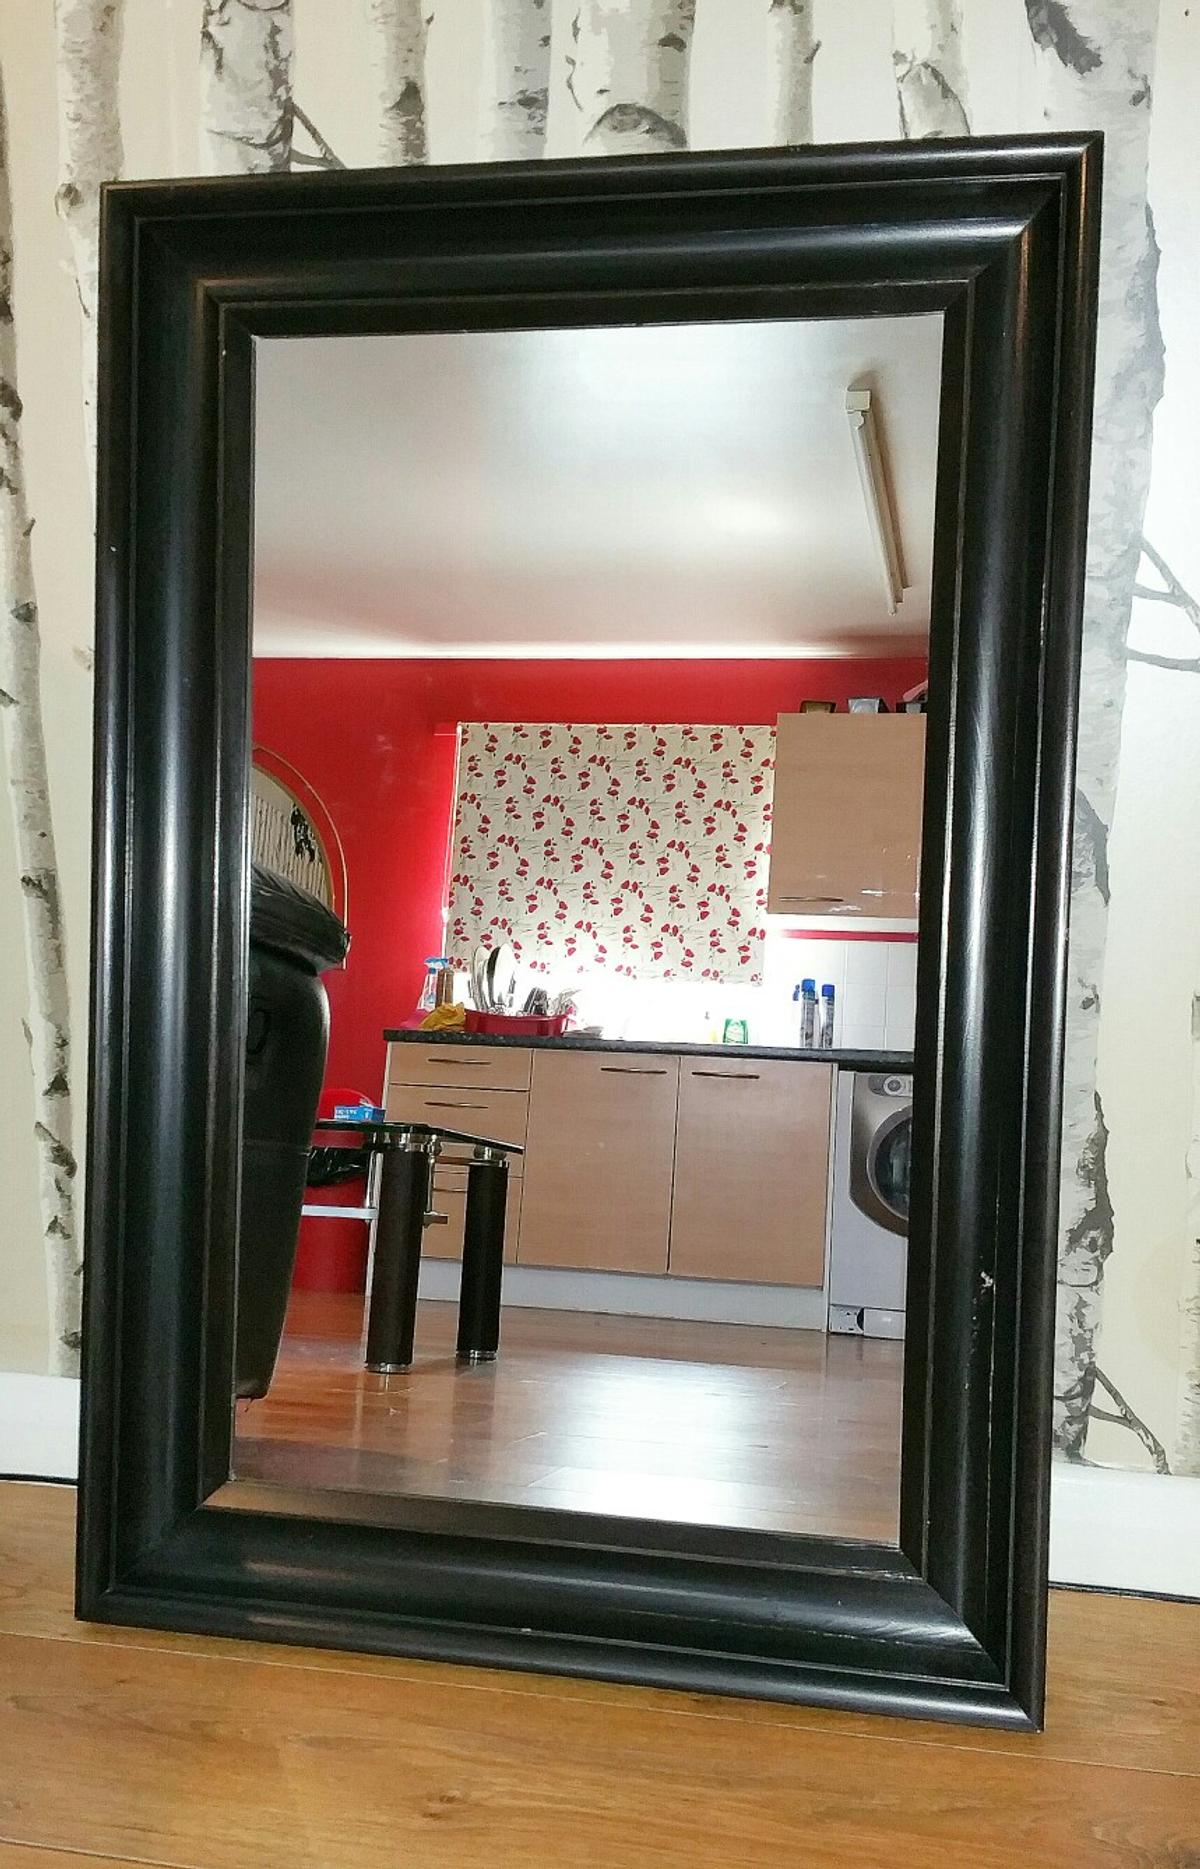 Ikea Hemnes Mirror In Very Good Condition. In RM3 Close For ...